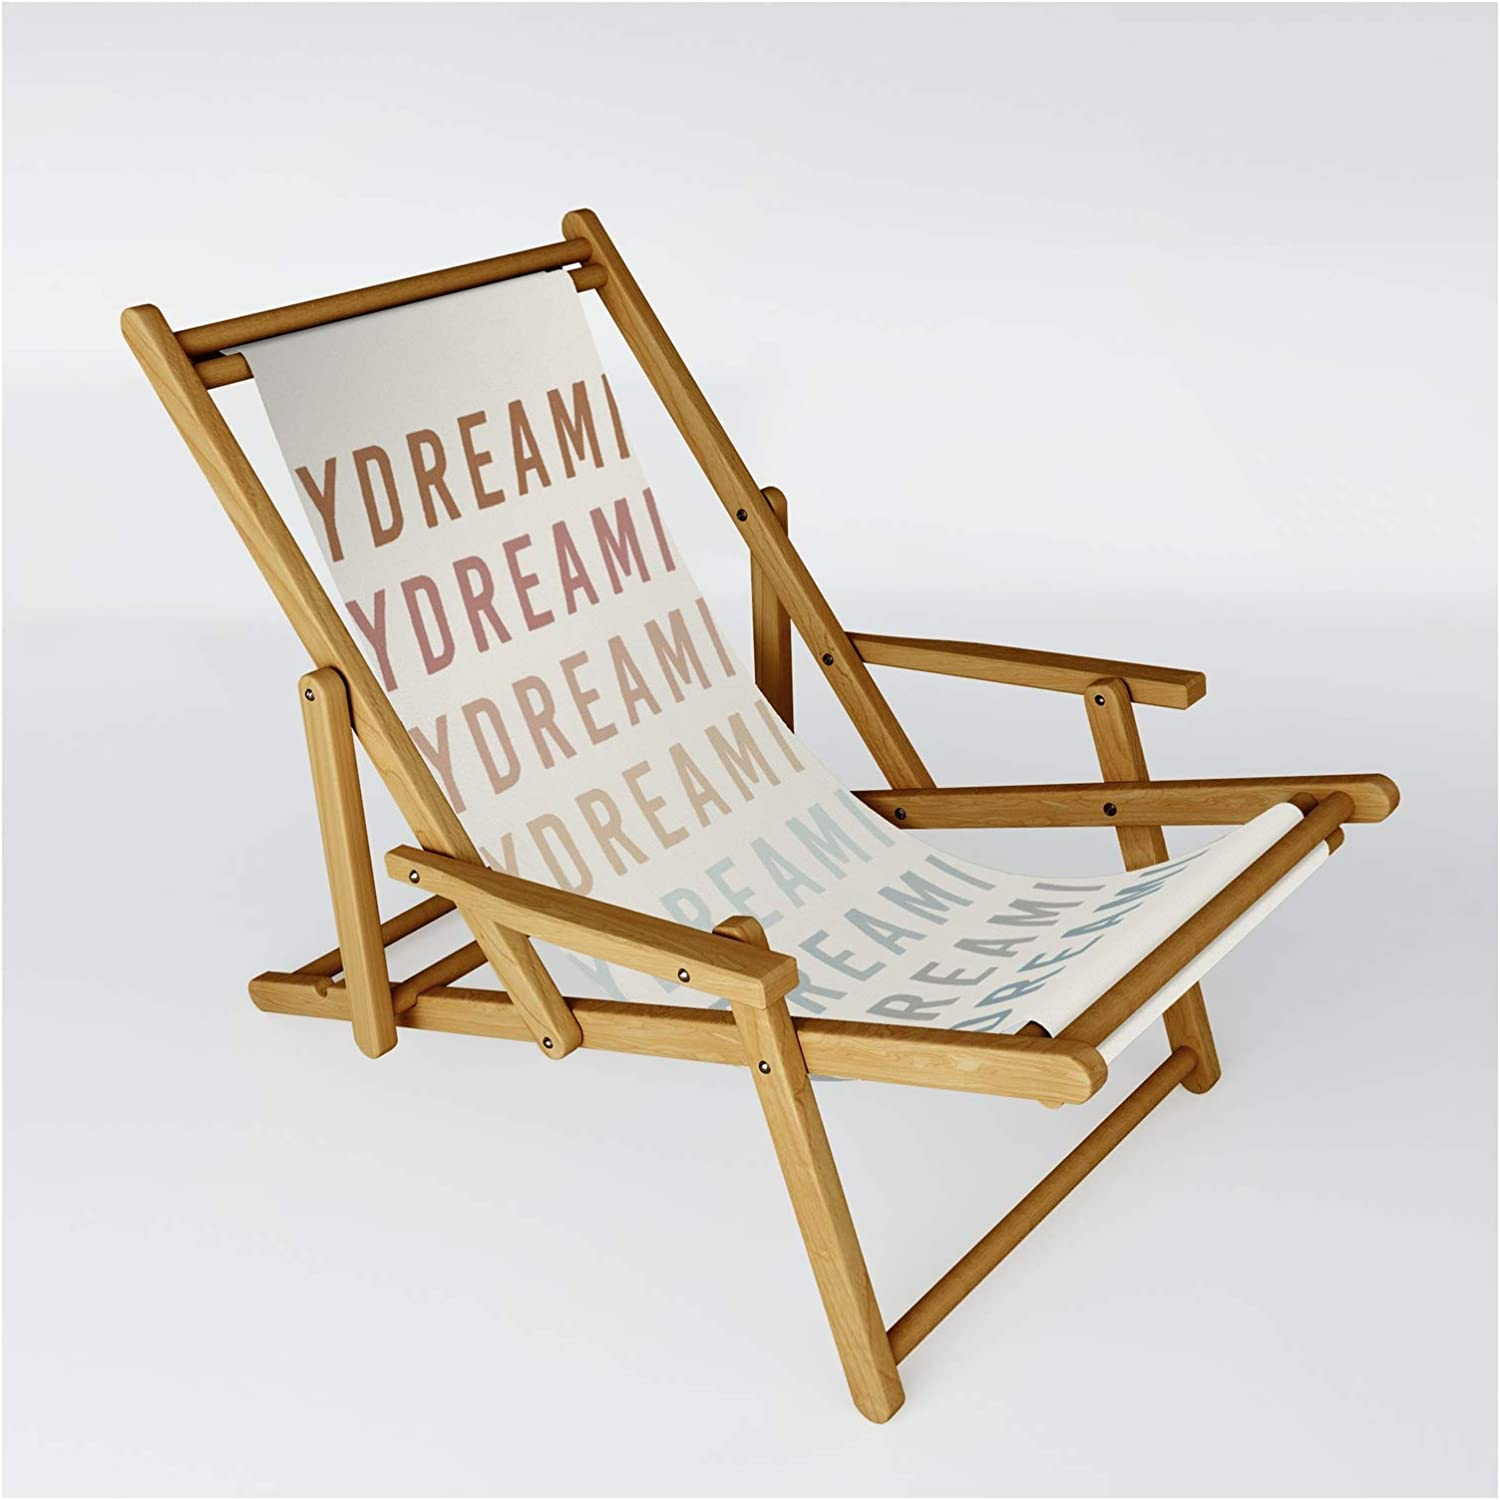 security Society6 Daydreaming by Fernanda Schallen on One S Chair - Sling Over item handling ☆